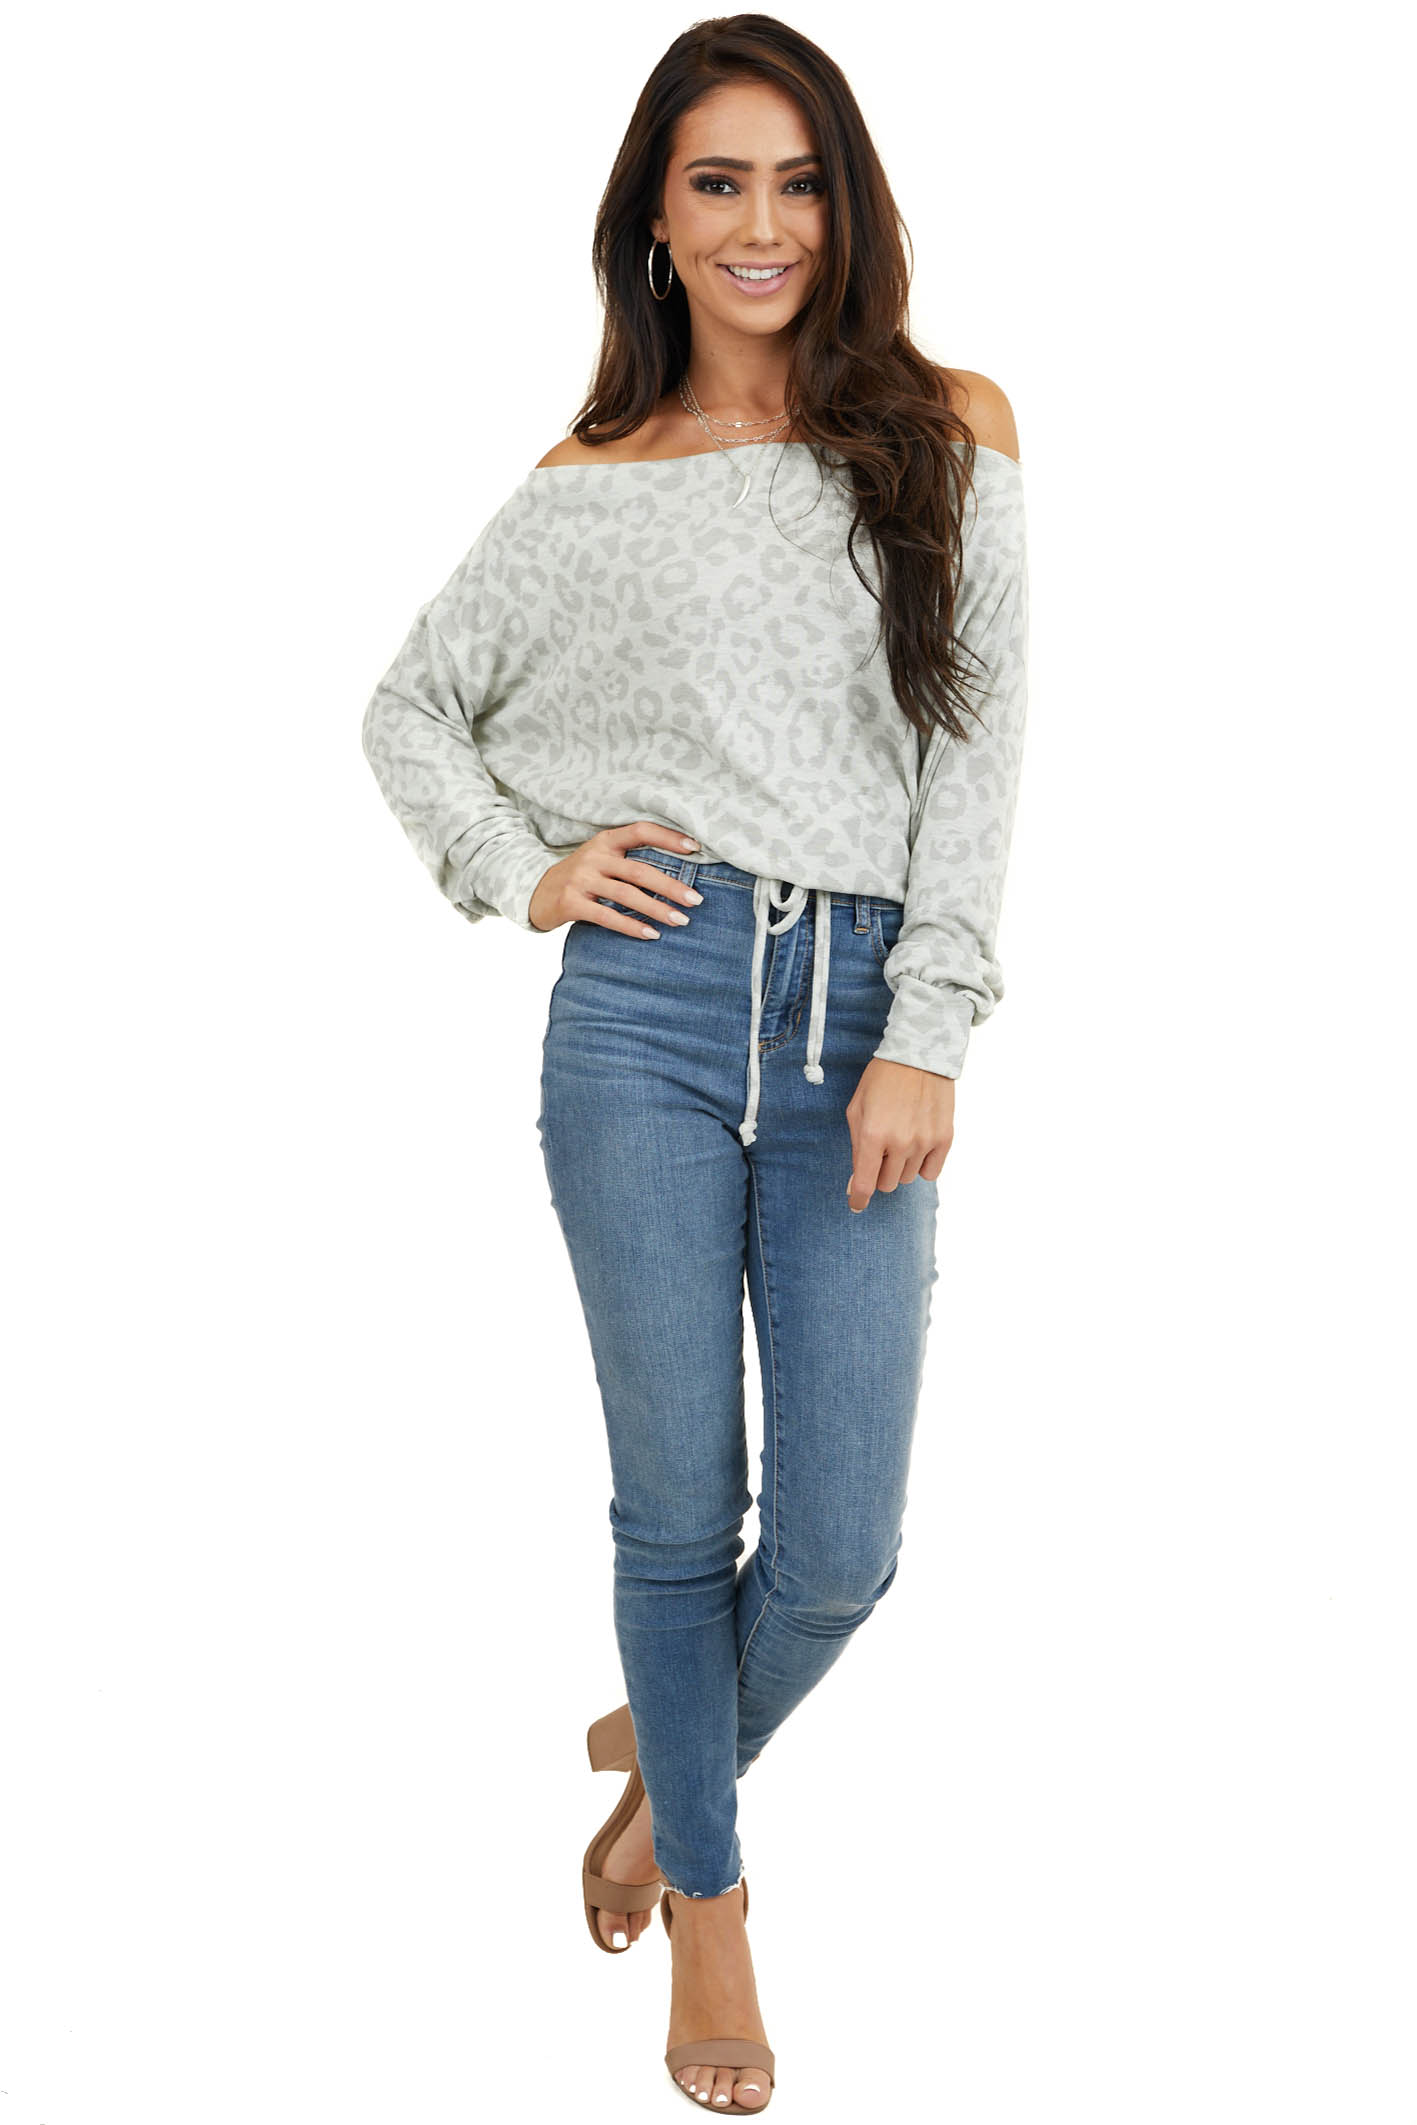 Seafoam Leopard Off Shoulder Knit Top with Drawstring Hem